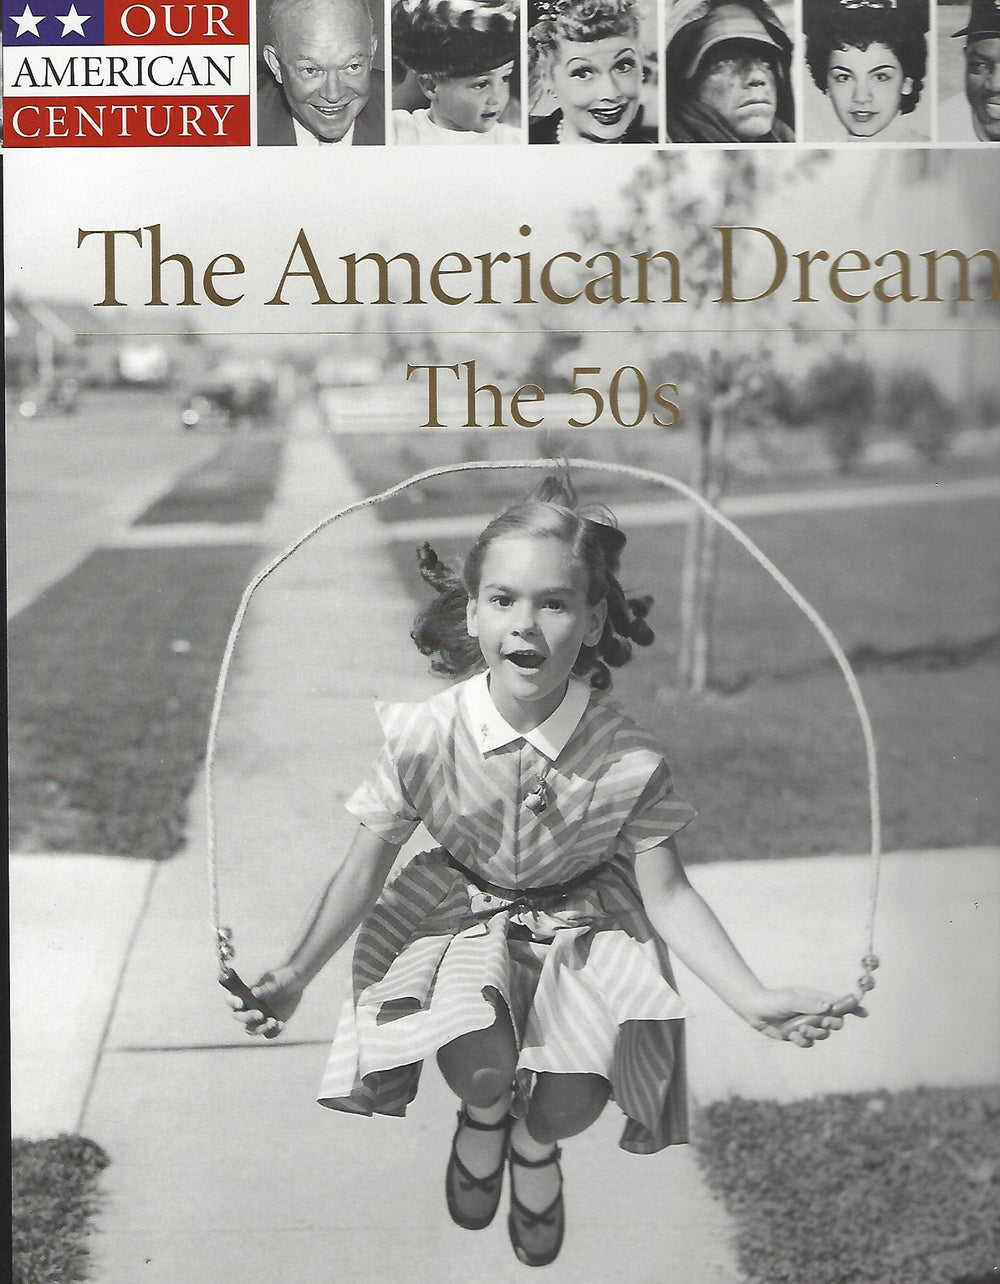 Time-Life: Our American Century-The American Dream-The 50s